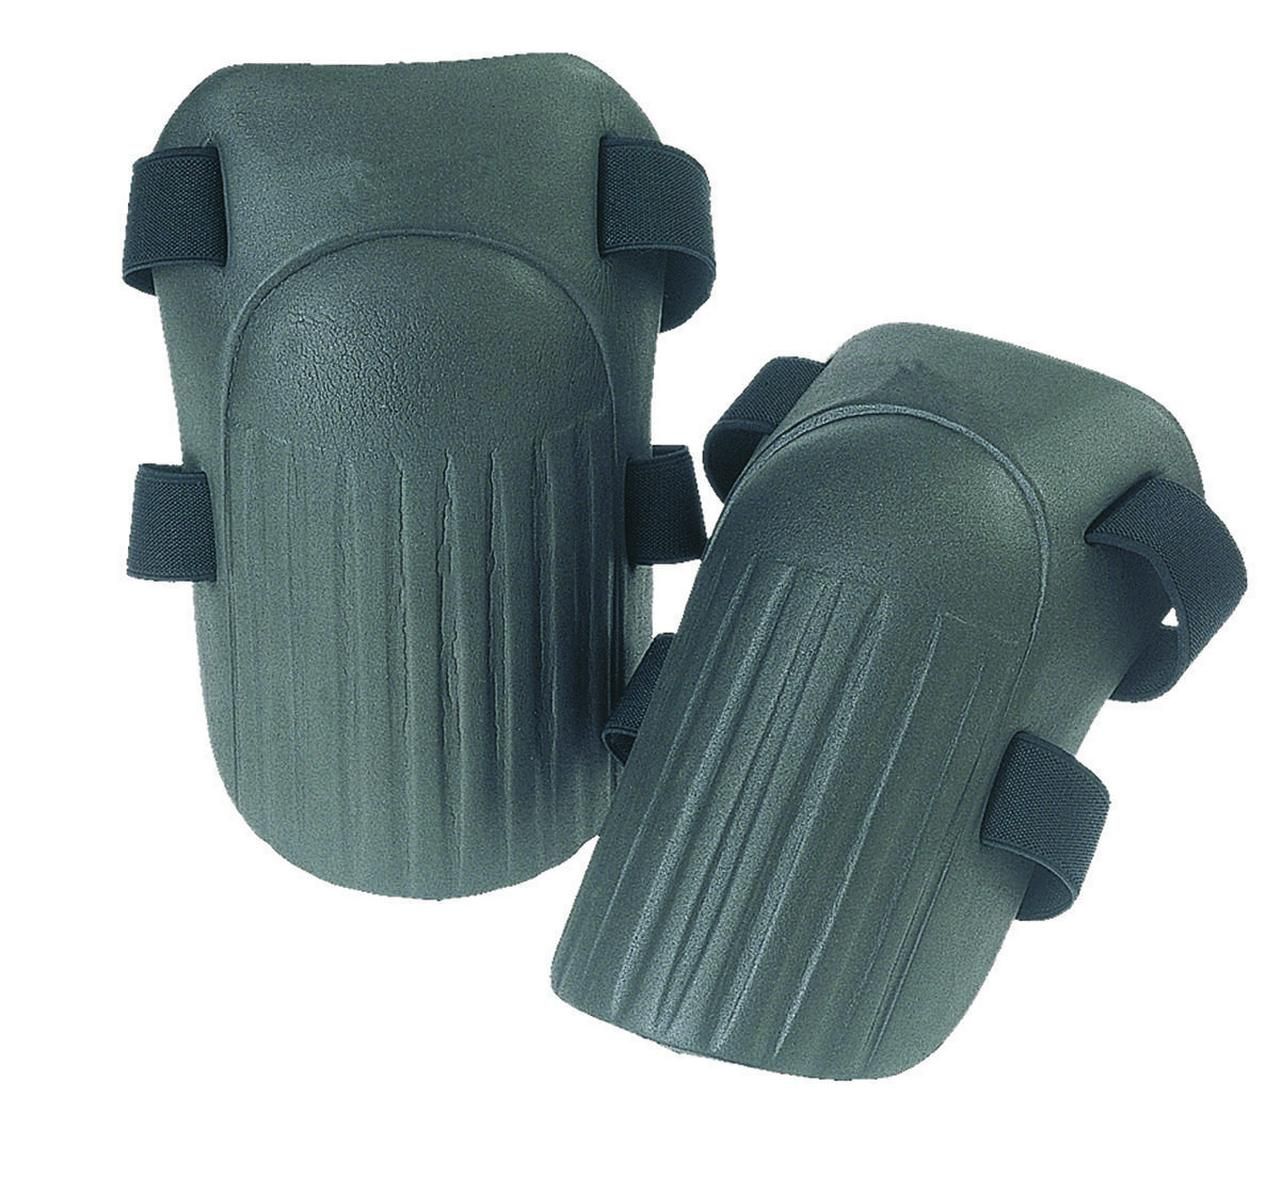 CLC Tool Works V229 Durable Knee Pad, One Size Fits All, Foam Pad, Black by Clc/Custom Leather Craft